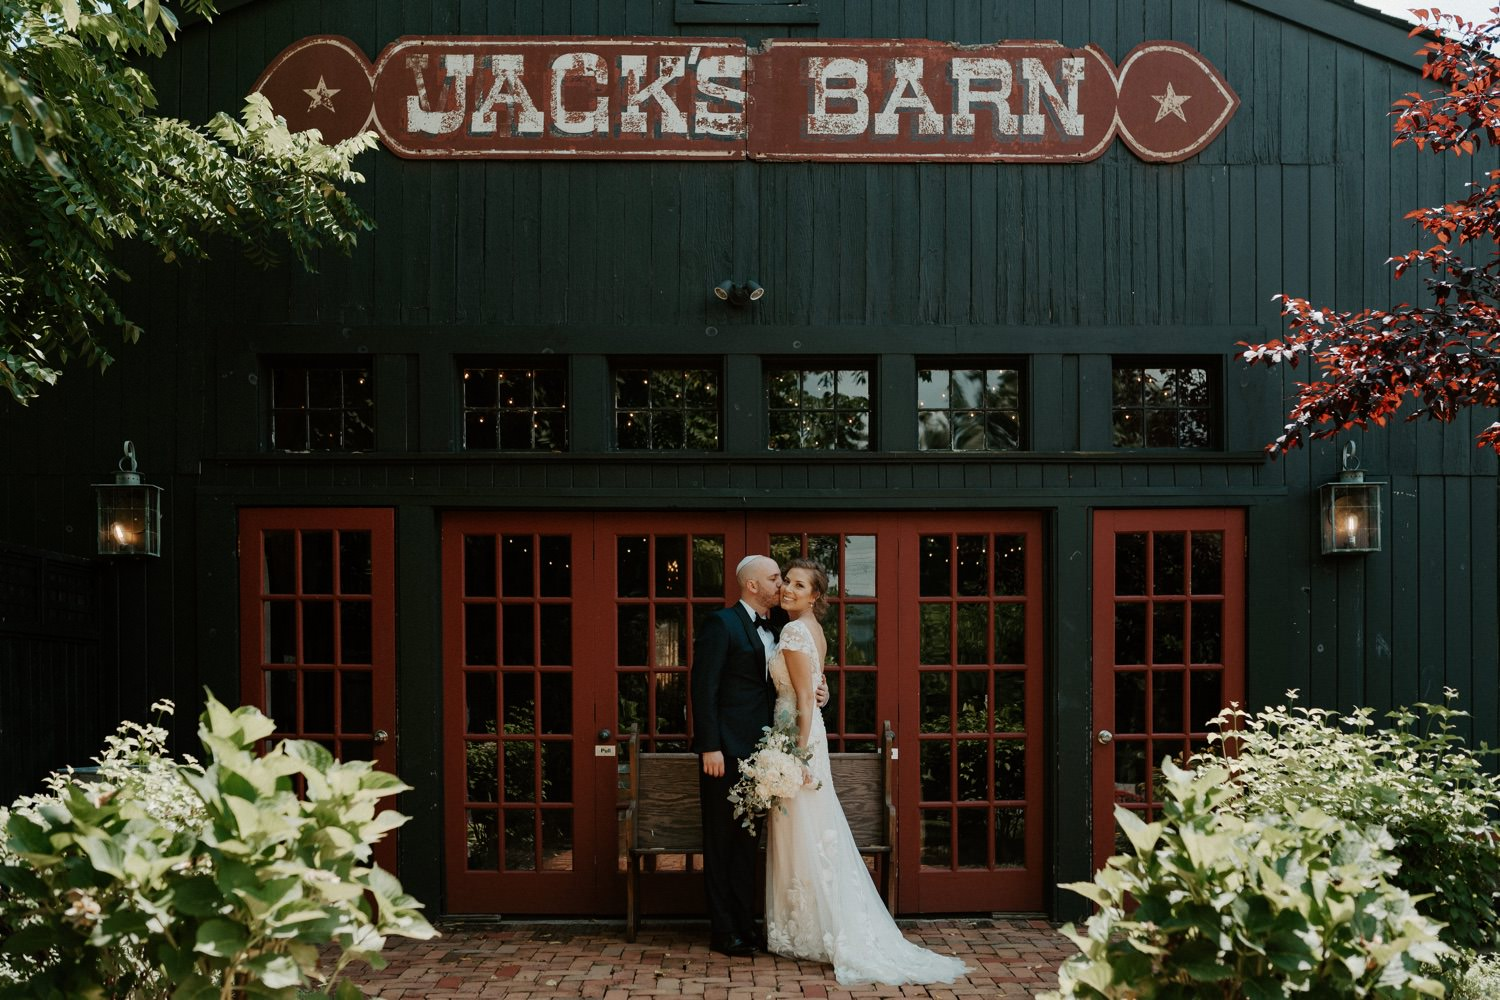 Jacks Barn Oxford New Jersey Wedding New Jersey Wedding Photographer NJ Wedding Venue Rustic Barn Wedding Anais Possamai Photography 020